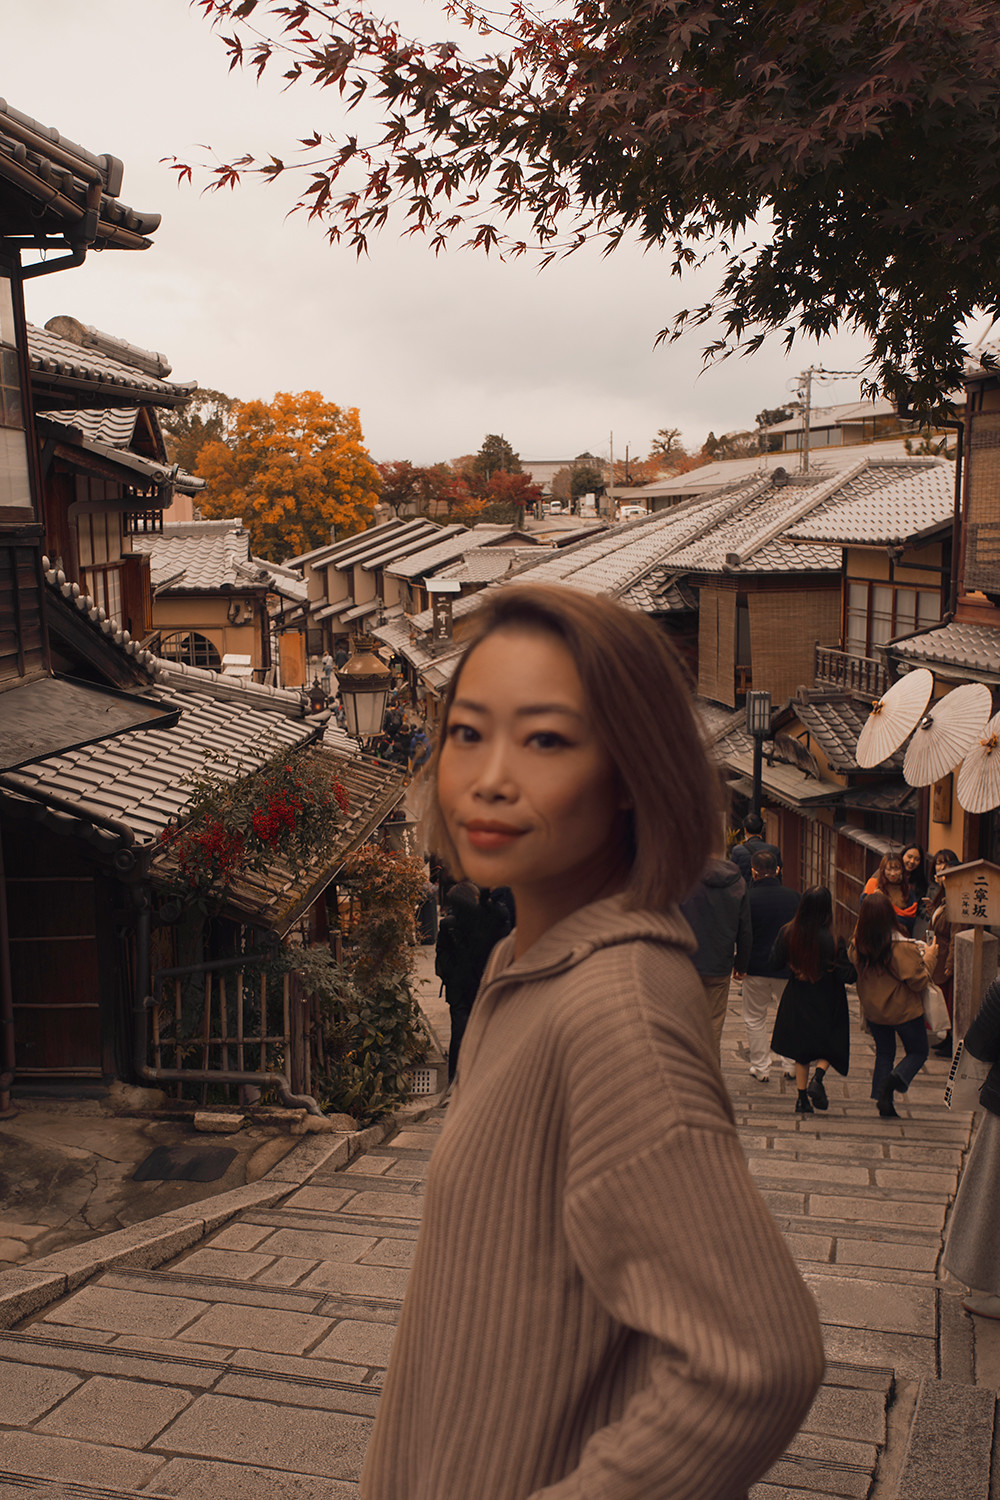 22kyoto-gion-architecture-japan-travel